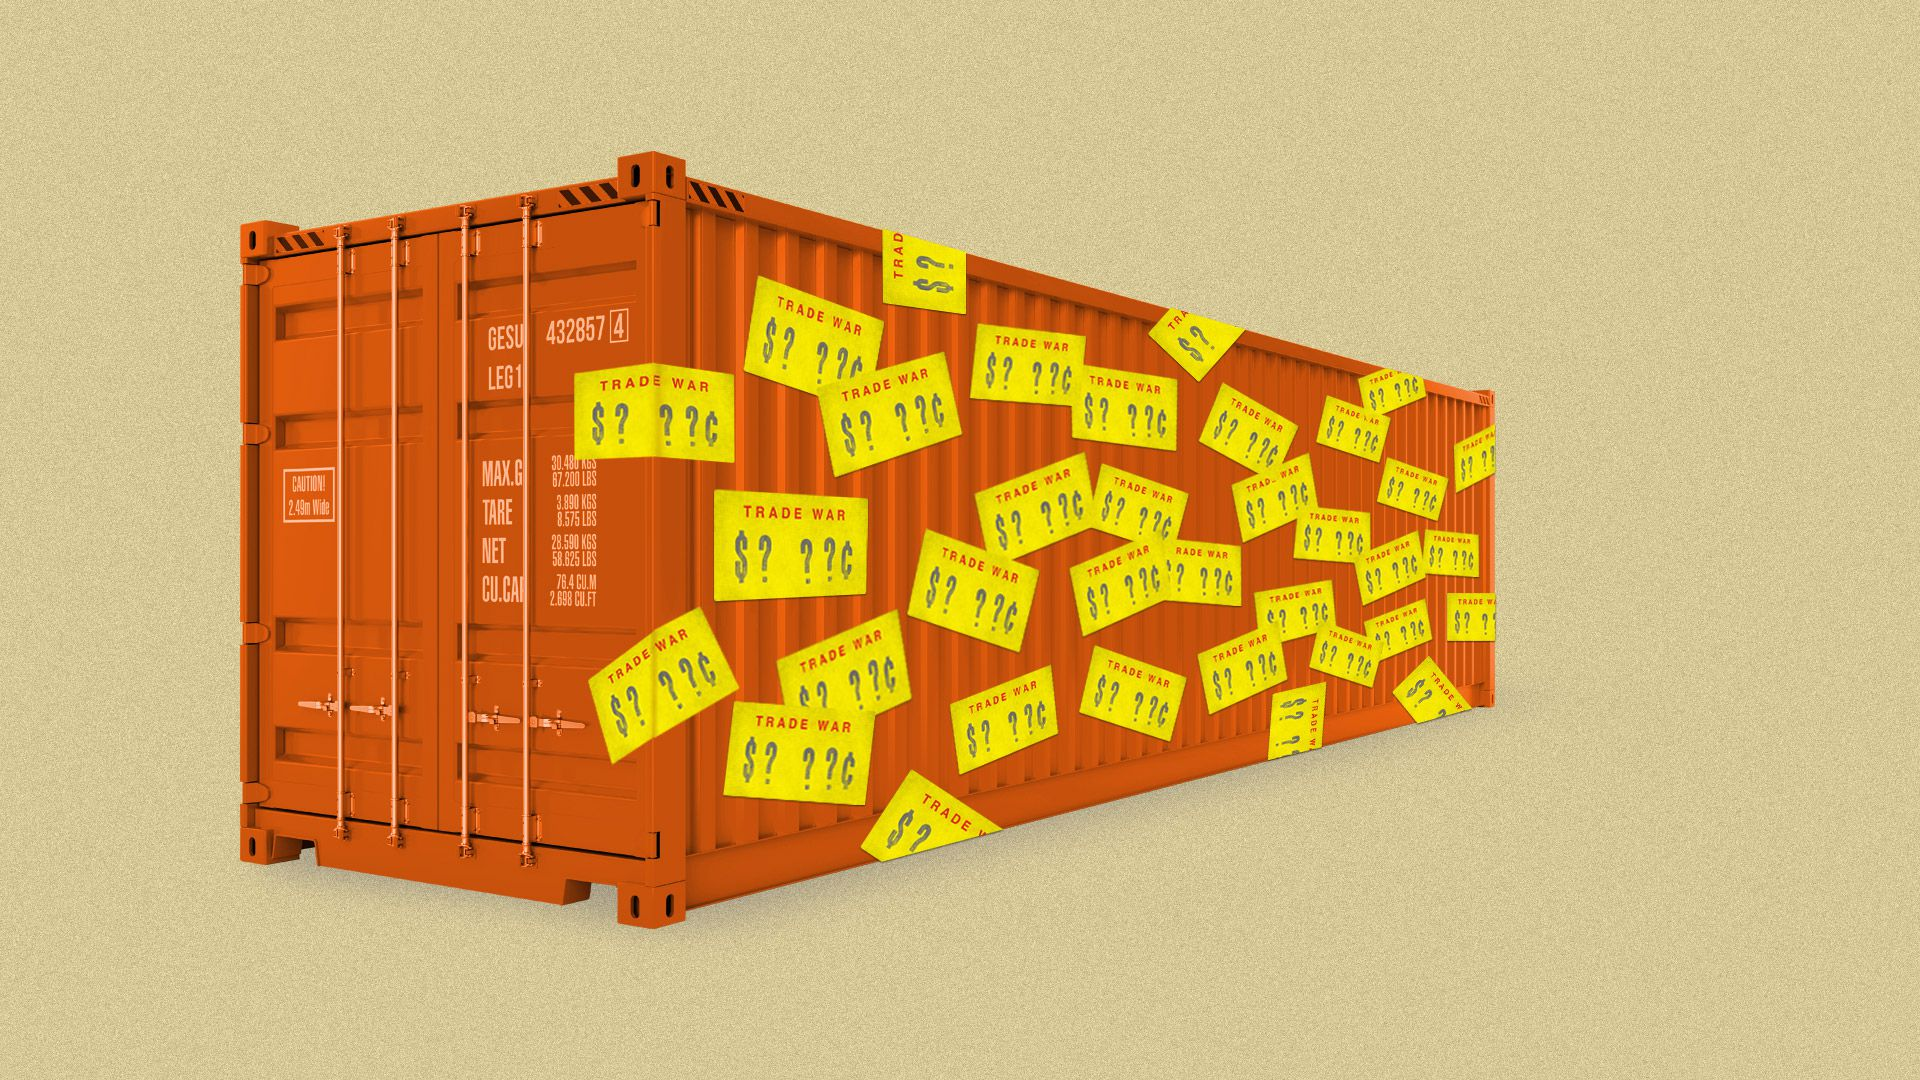 An illustration of a shipping container covered in price tags